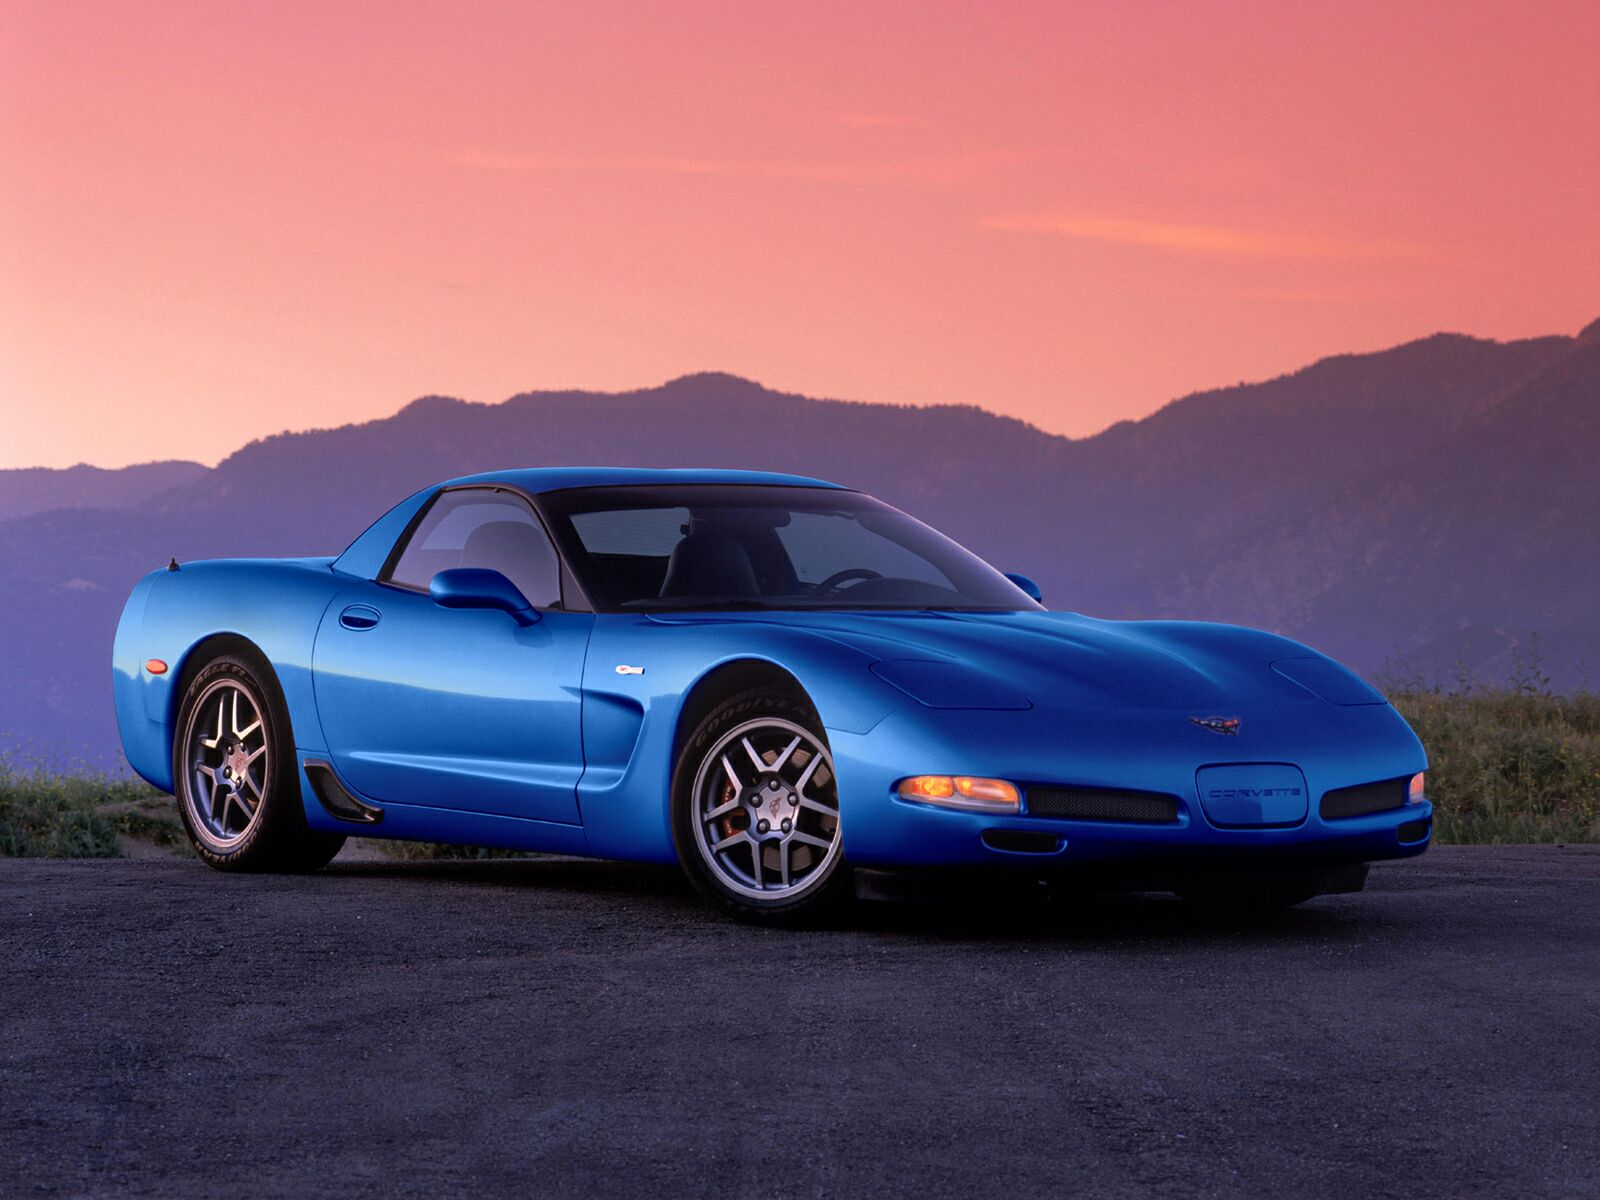 Pictures of chevrolet corvette c5 hardtop 2003